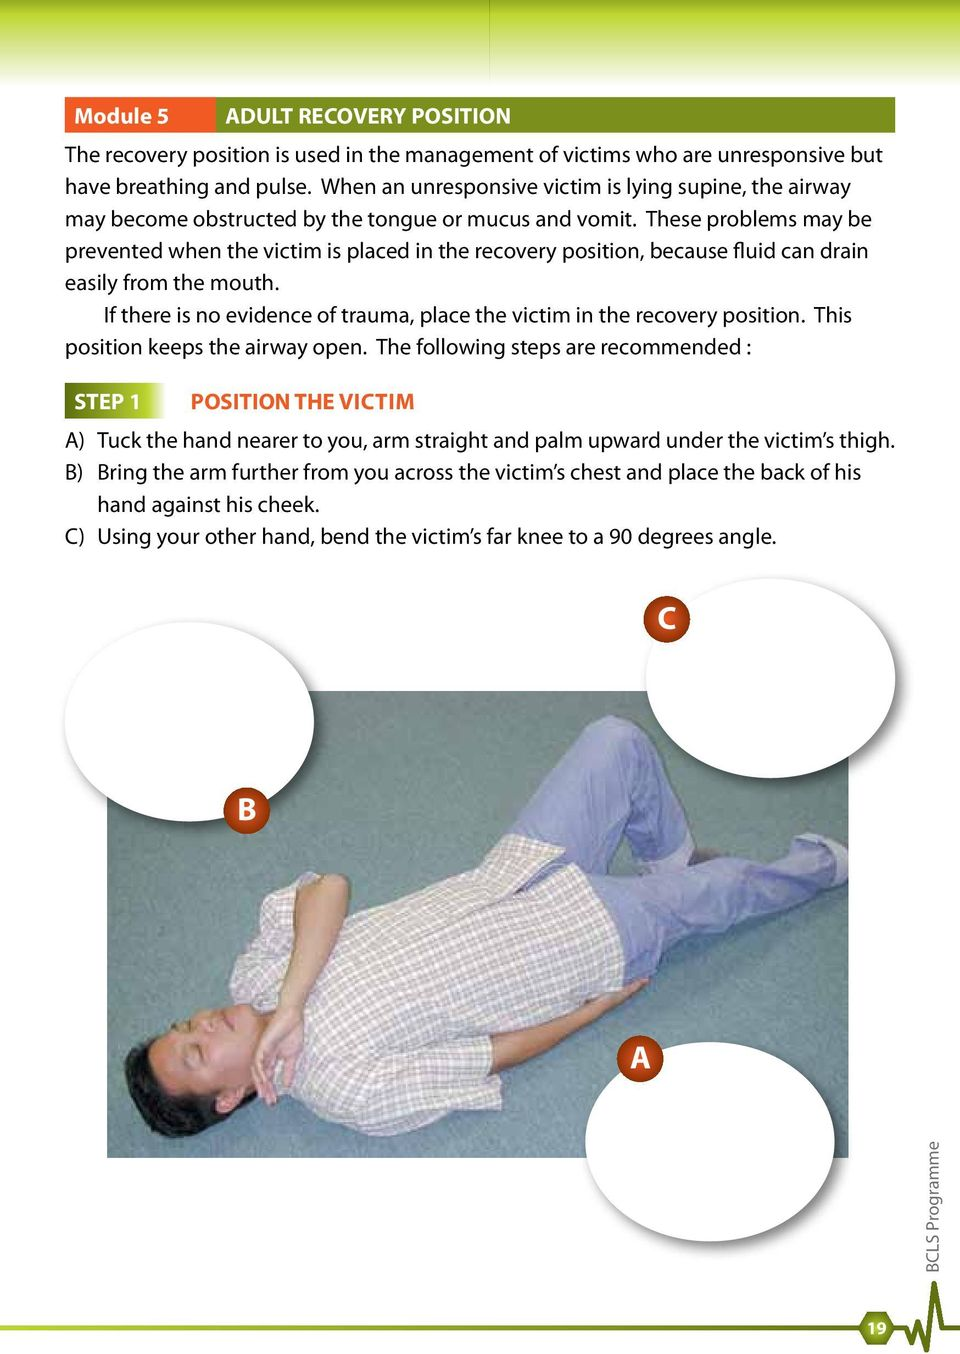 These problems may be prevented when the victim is placed in the recovery position, because fluid can drain easily from the mouth.